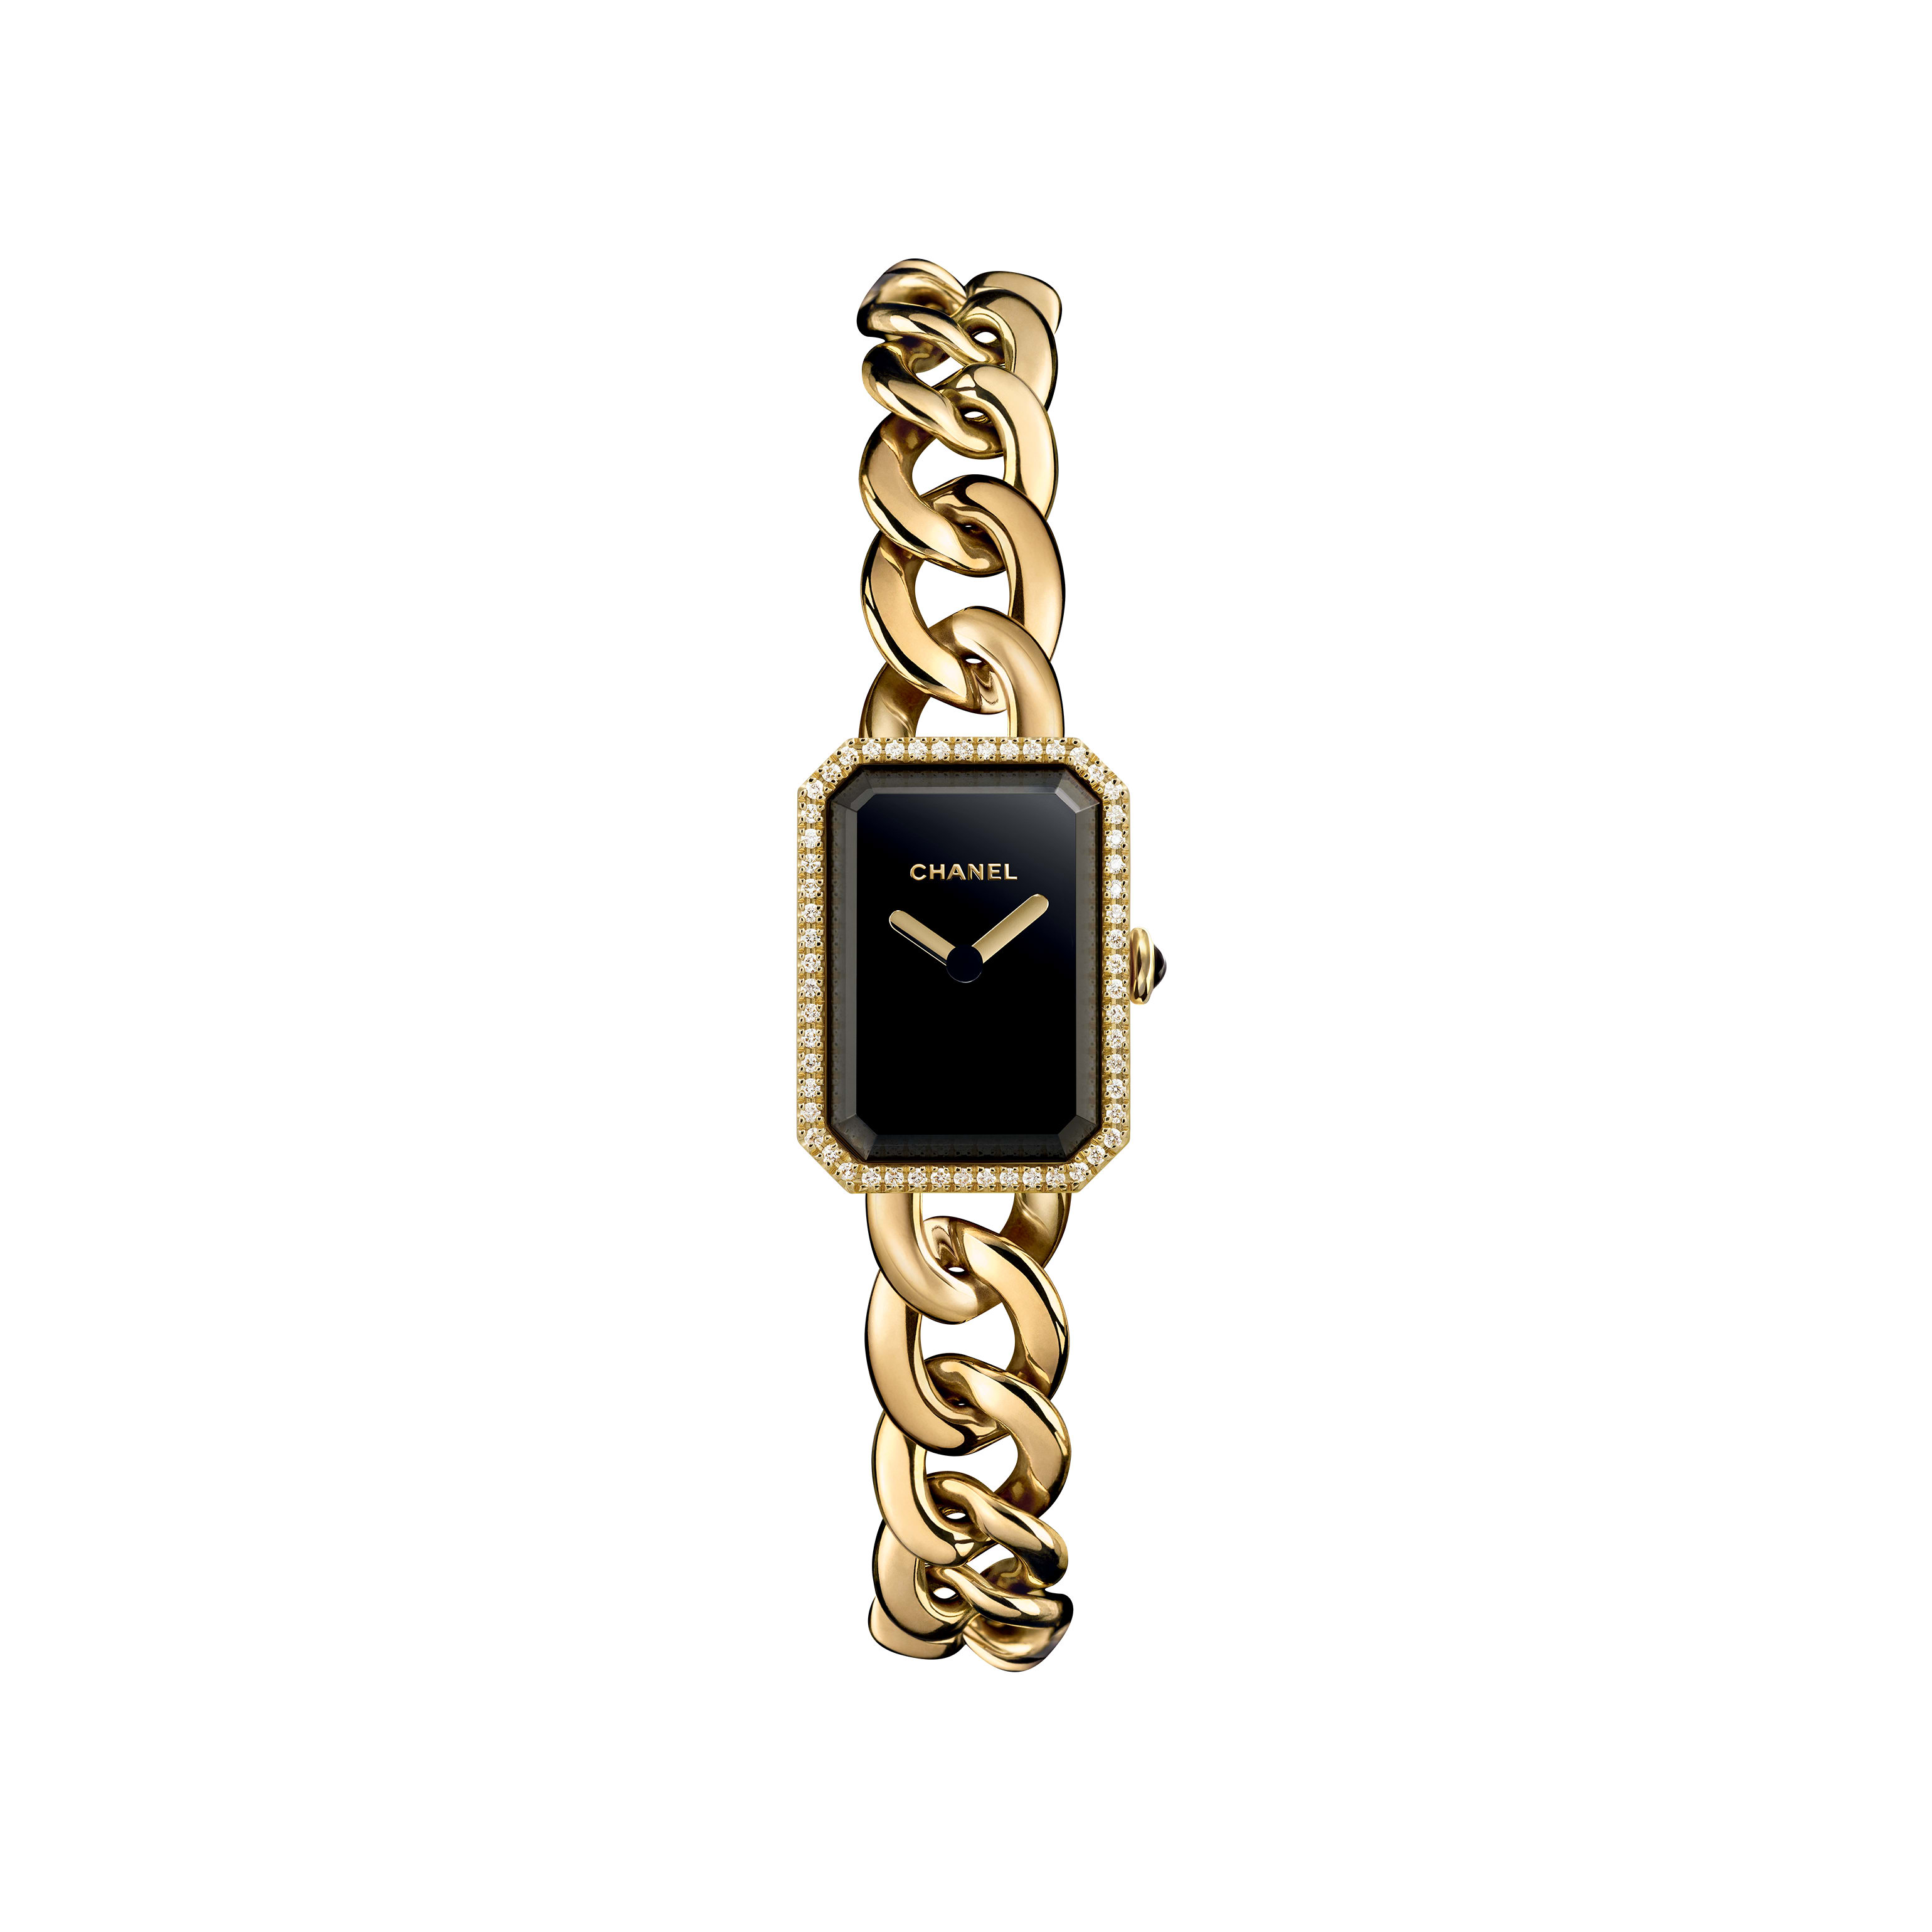 Première Chaîne - Small version, yellow gold and diamonds, black dial - CHANEL - Default view - see standard sized version